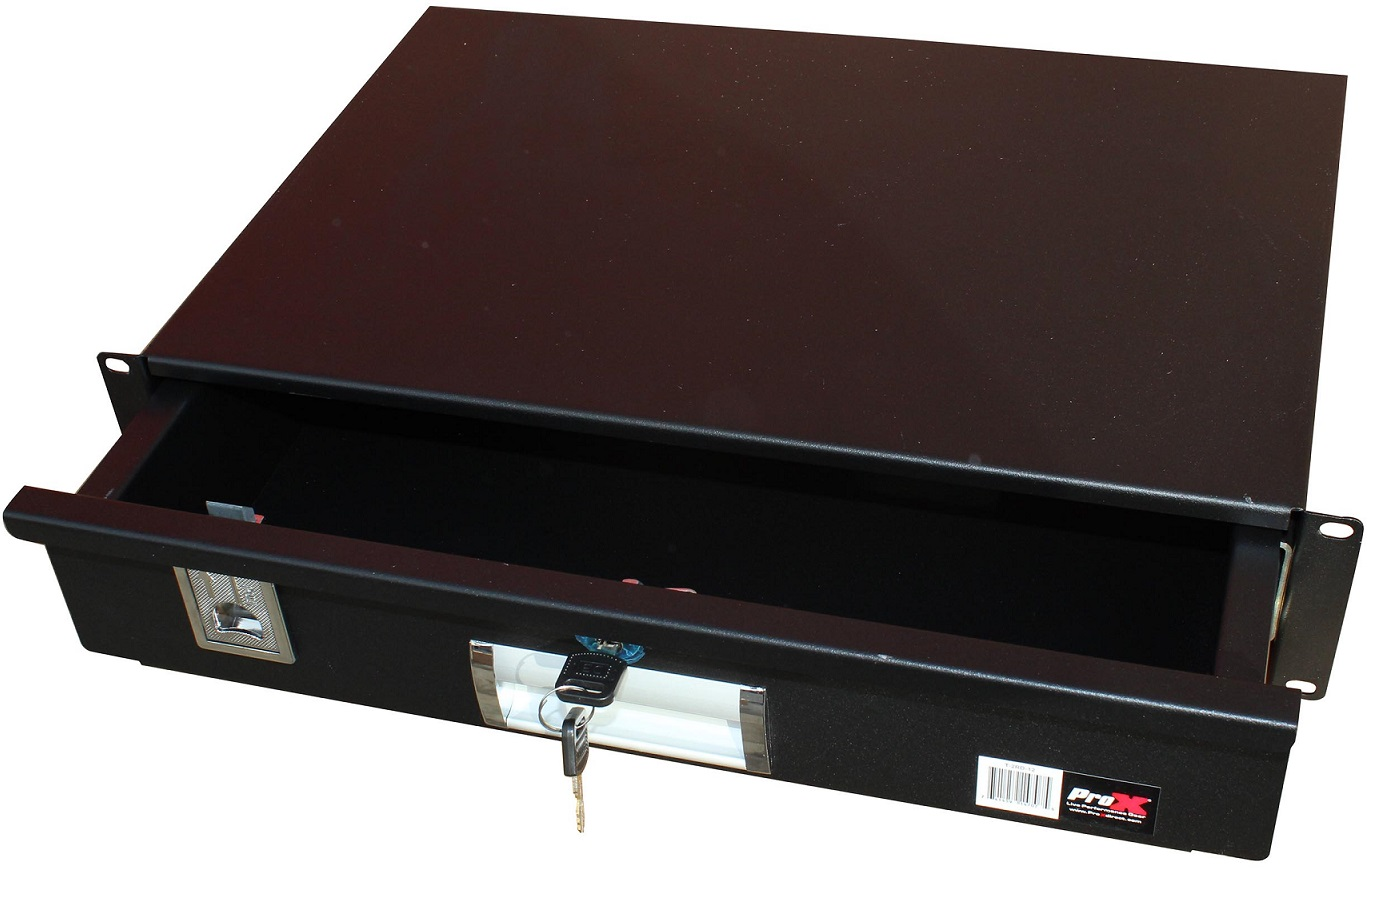 prox-t-2rd-12-19in-rack-drawer-locking.jpg